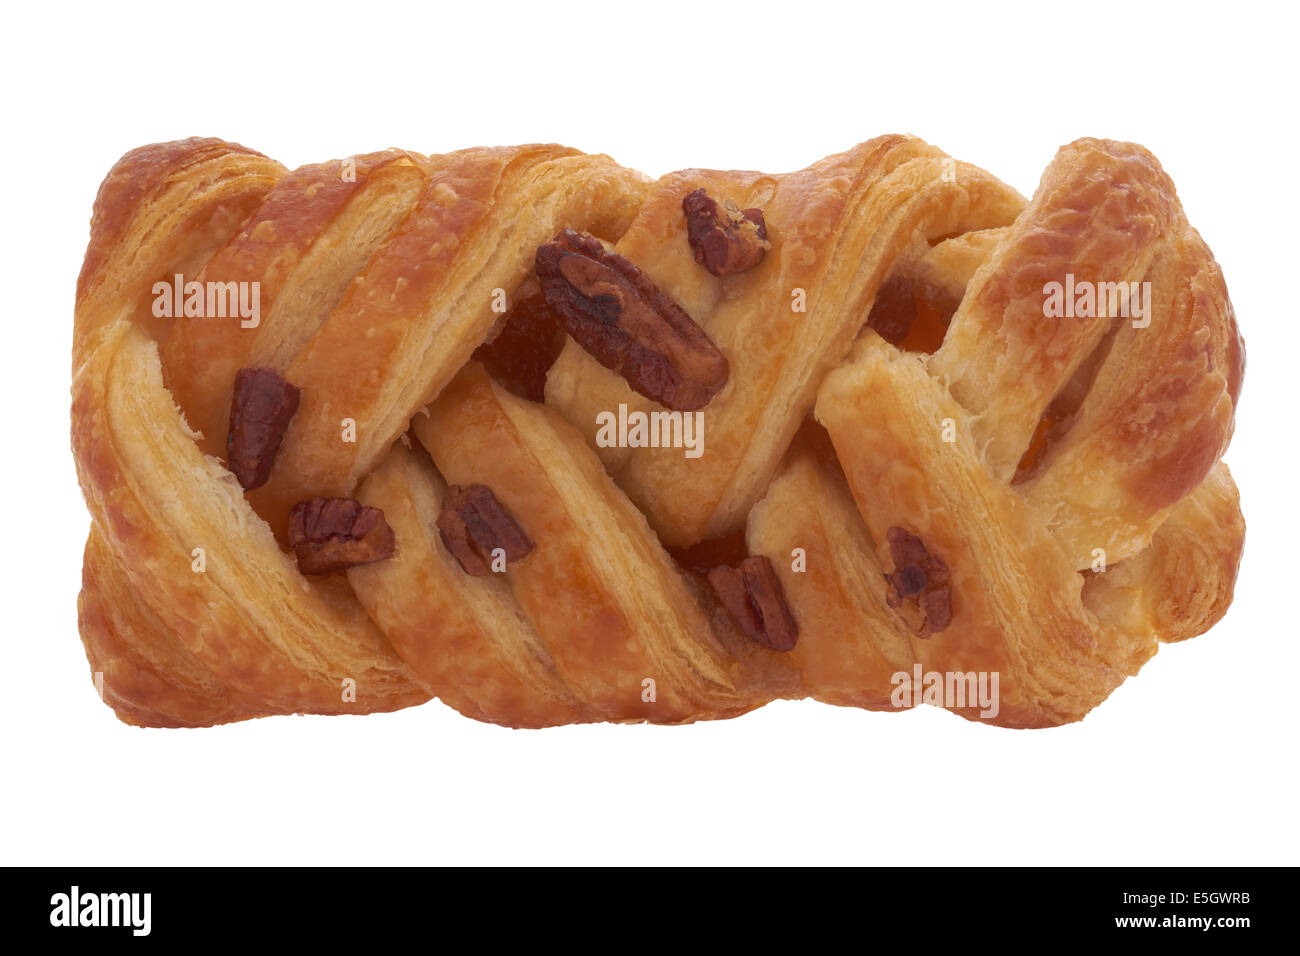 Maple and pecan plait pastry on white background - Stock Image